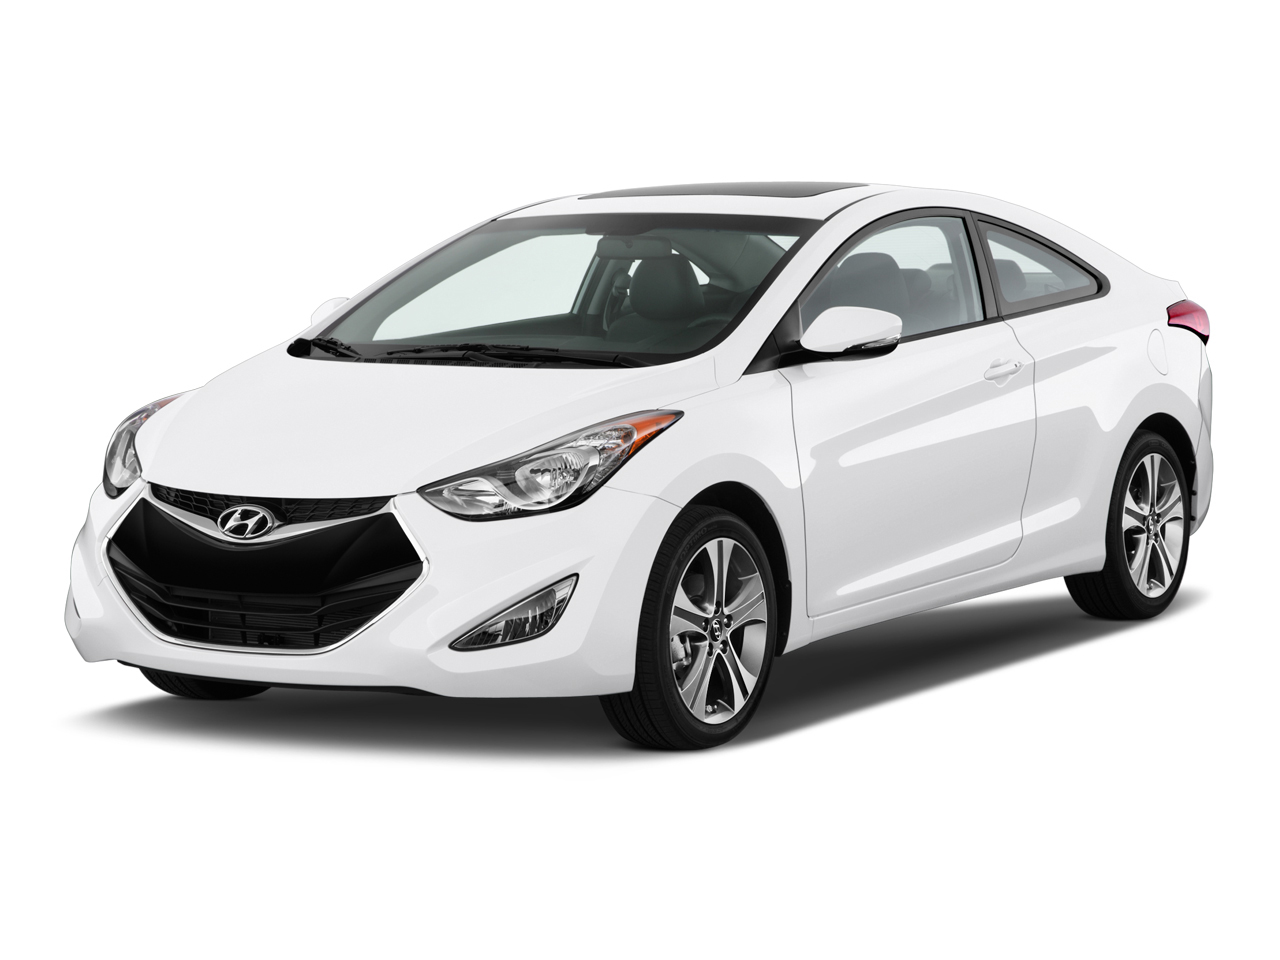 Hyundai Elantra Specs Of Wheel Sizes Tires Pcd Offset